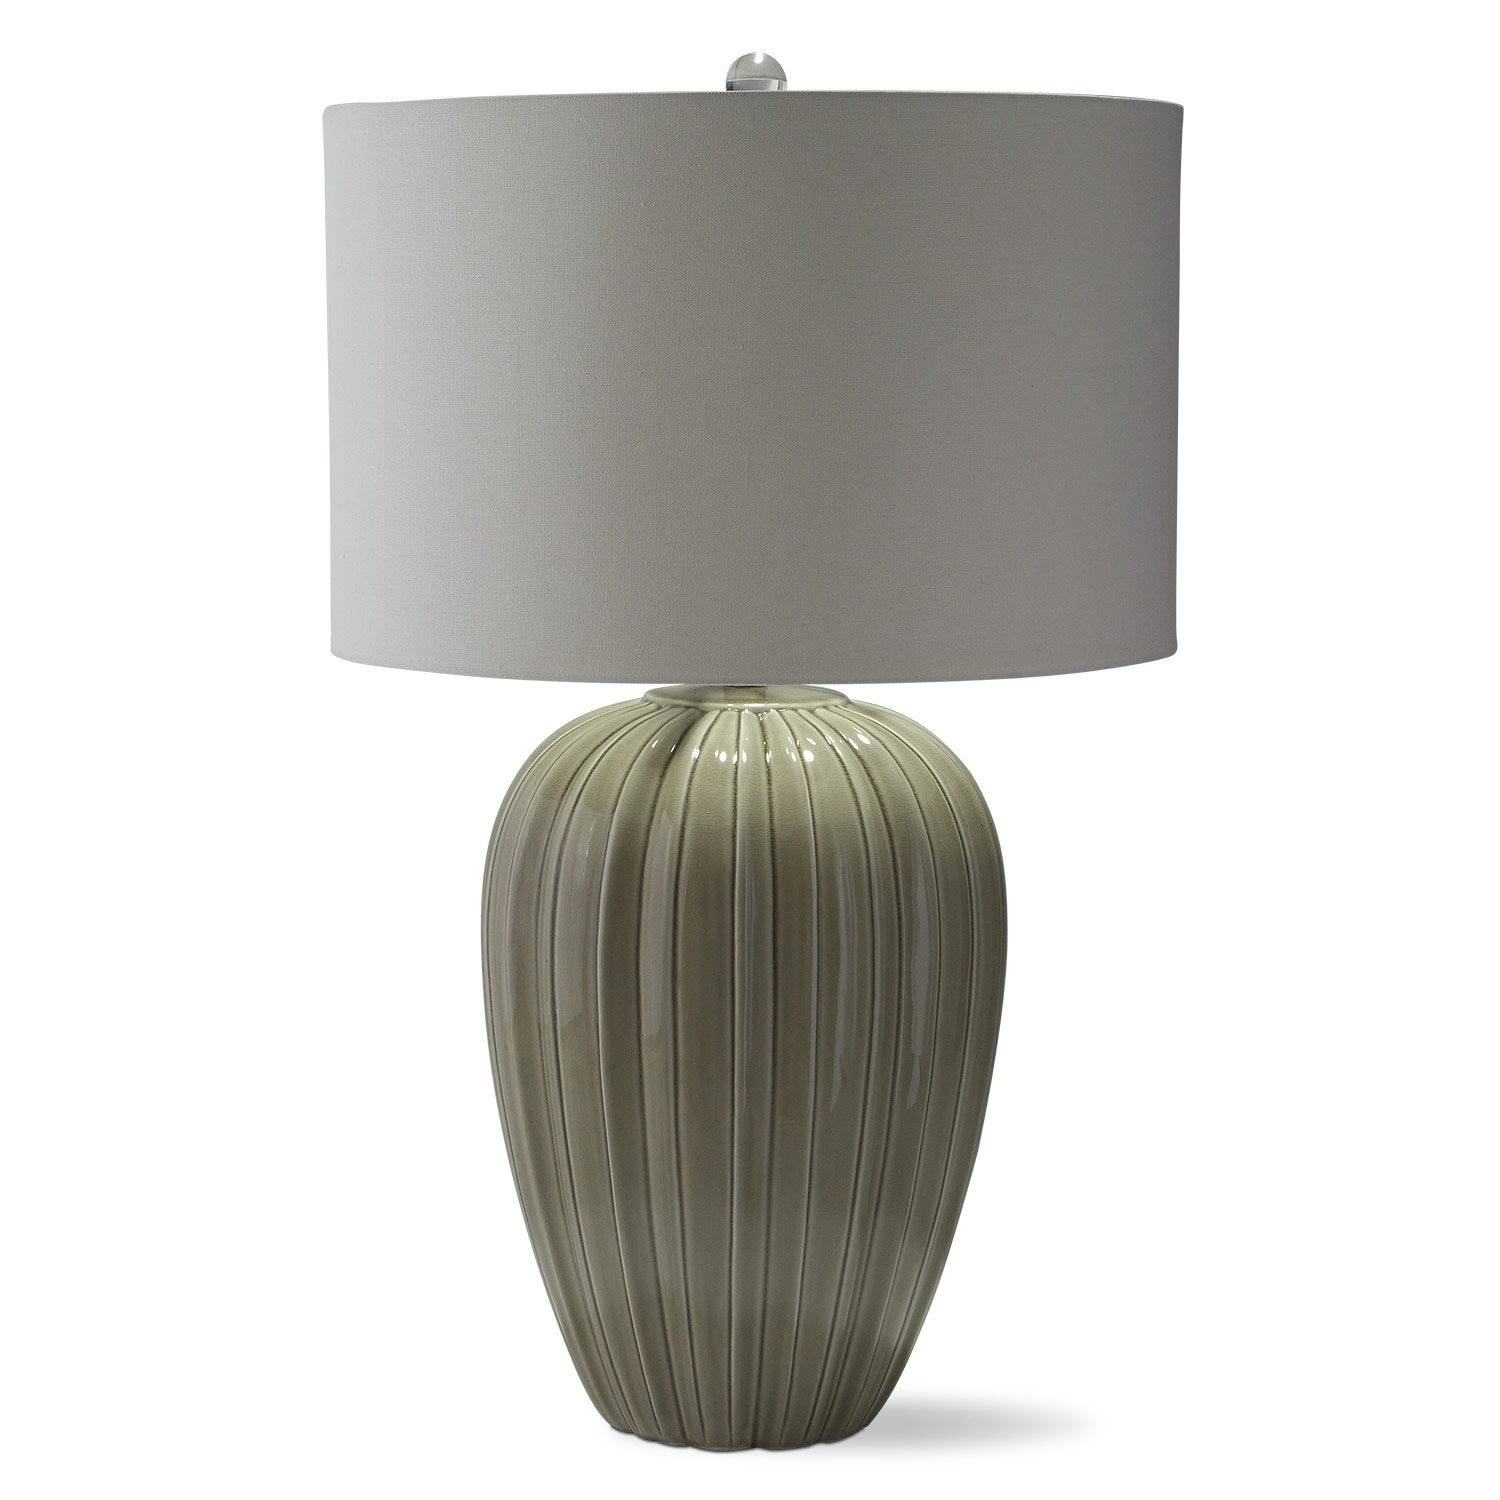 Home Accessories - Gray Brown Ceramic Table Lamp